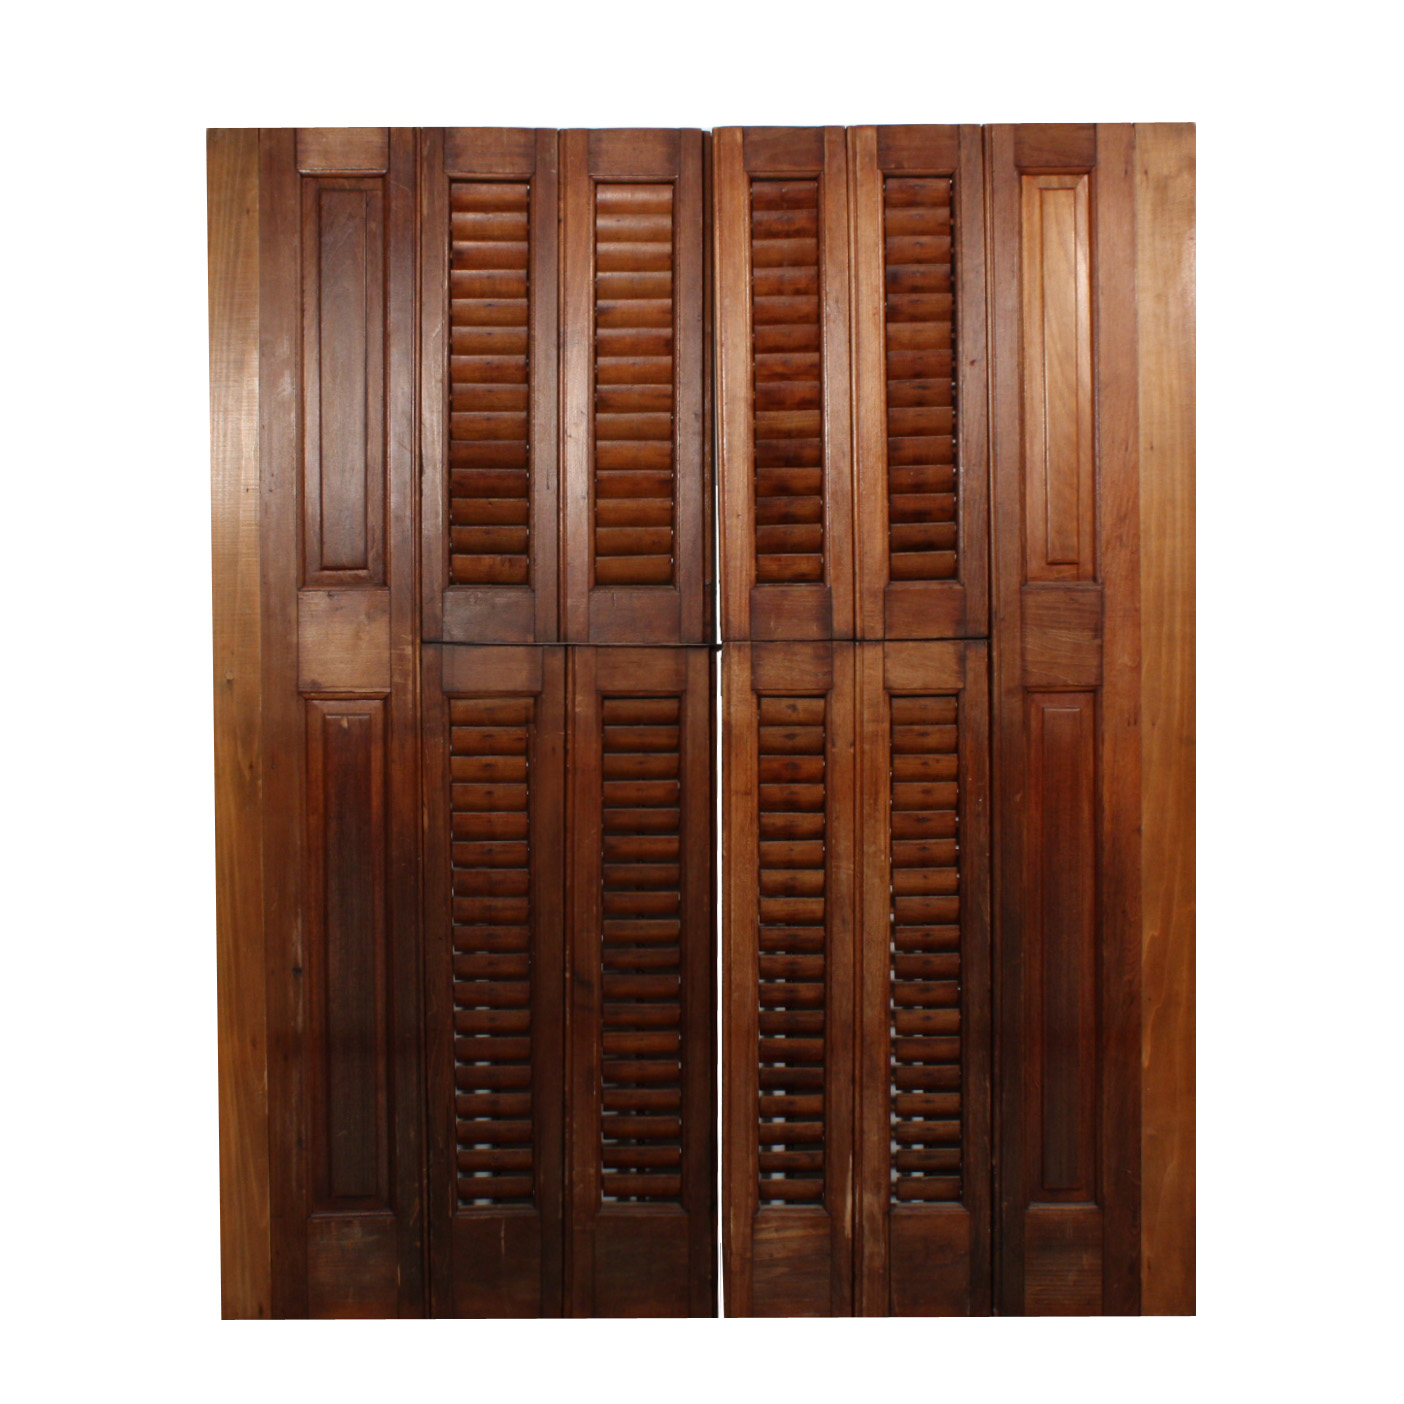 outstanding antique interior wood shutters early 1900 39 s nshr3 rw for sale